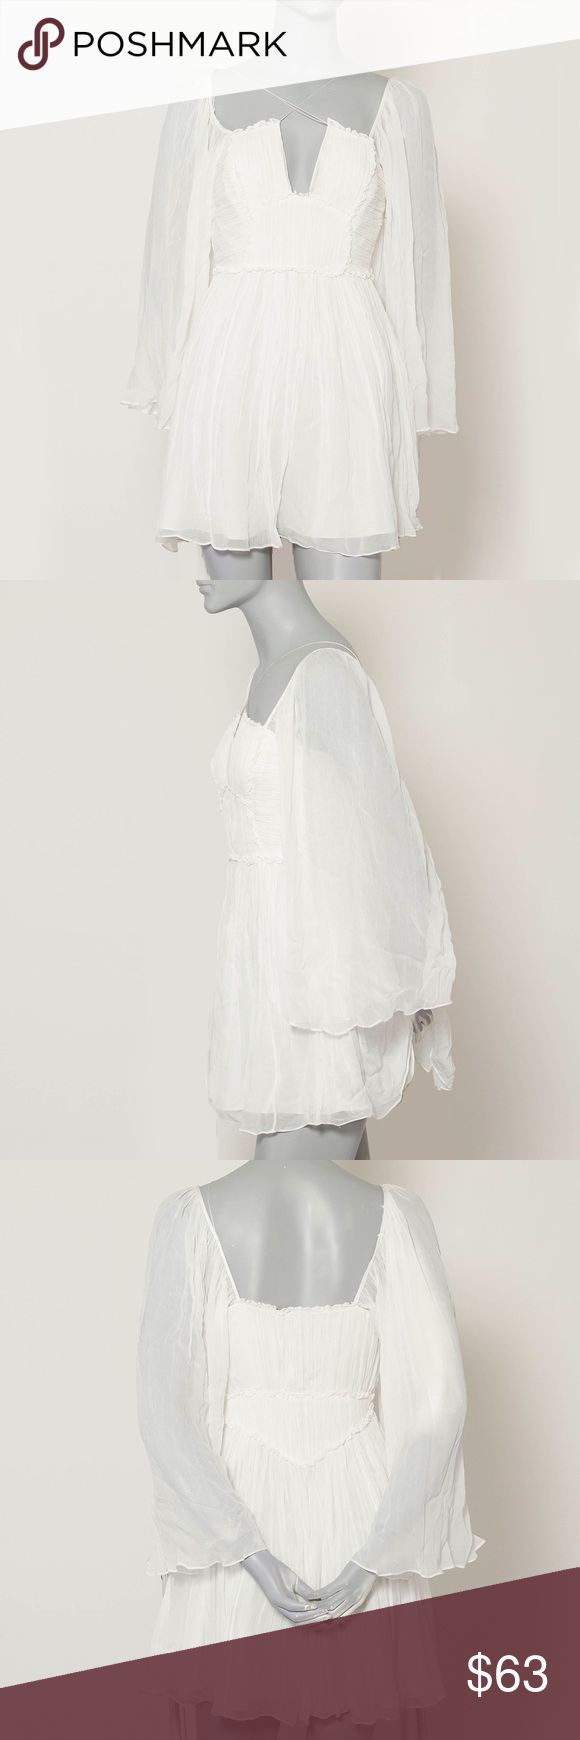 Free People Aquarius Dress in White- Size 0 NEW! Brand new without tags- Free People Aquarius mini dress- sheer flowing sleeves and skirt! Has cross string detail, one of the strings is broken, as shown in the last image!! Should be an easy fix though Free People Dresses Mini